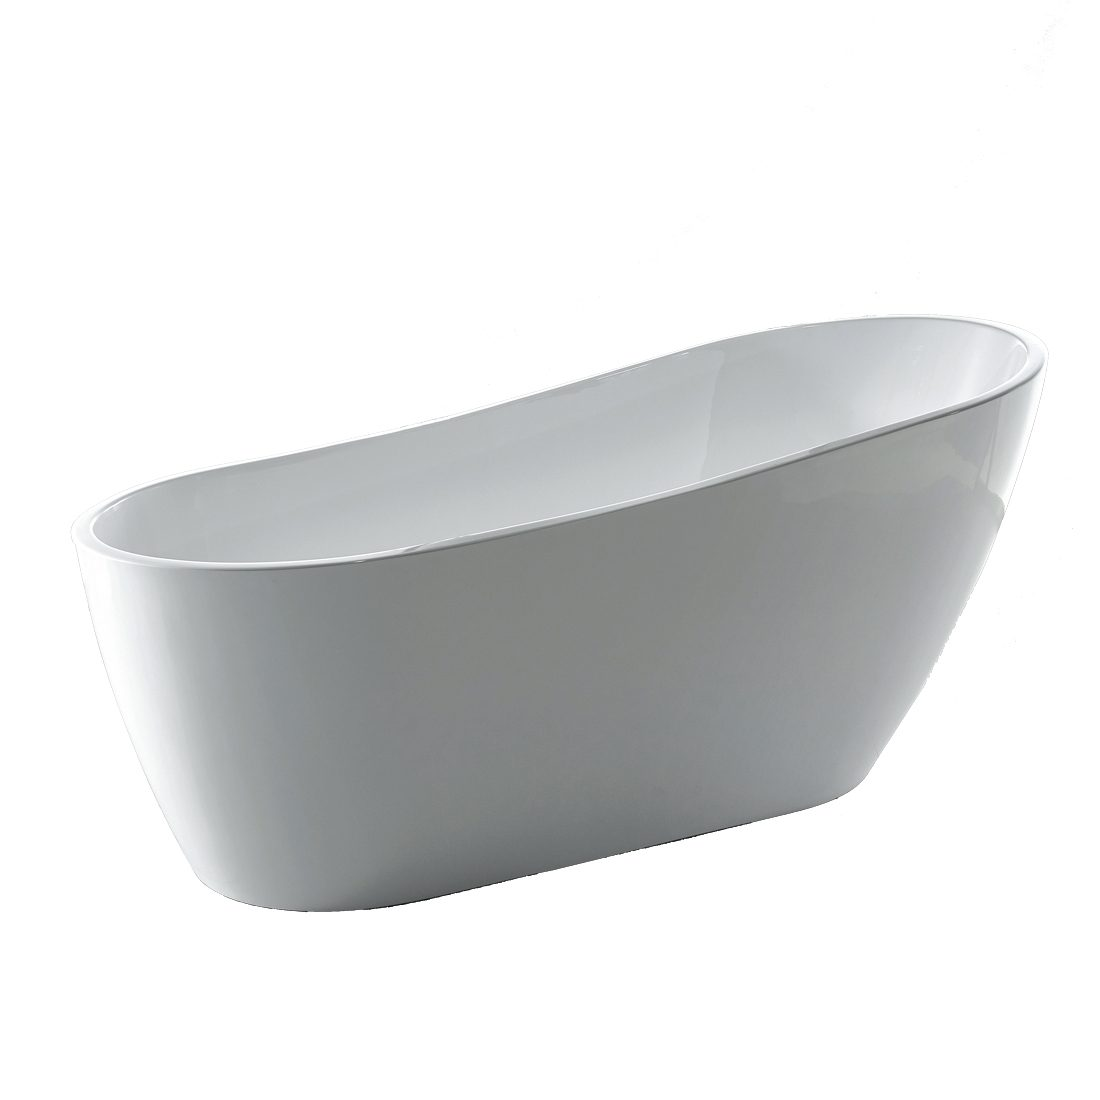 Nantes Acrylic Freestanding Bathtub 60inch Side View